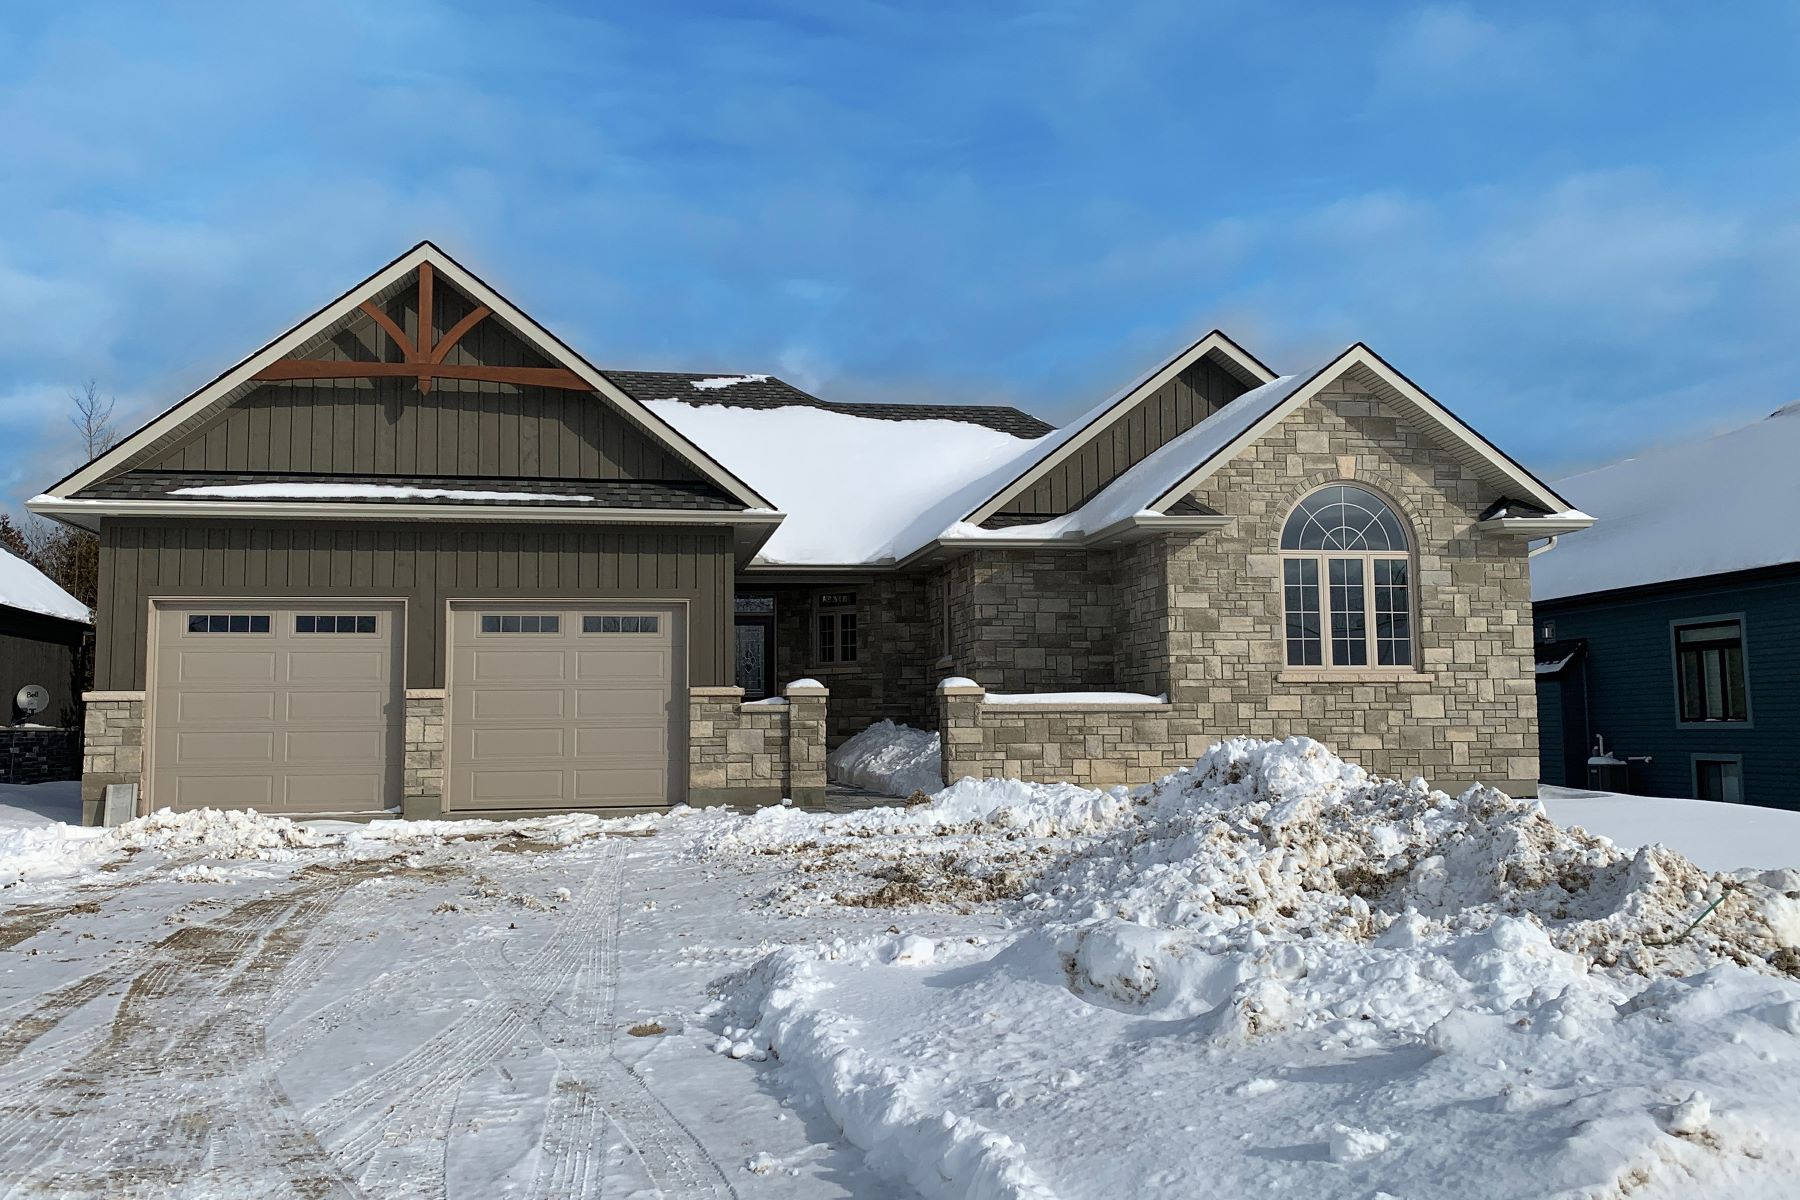 Single Family Homes for Sale at Beautiful New Bungalow 118 High Bluff Lane Thornbury, Ontario N0H 2P0 Canada